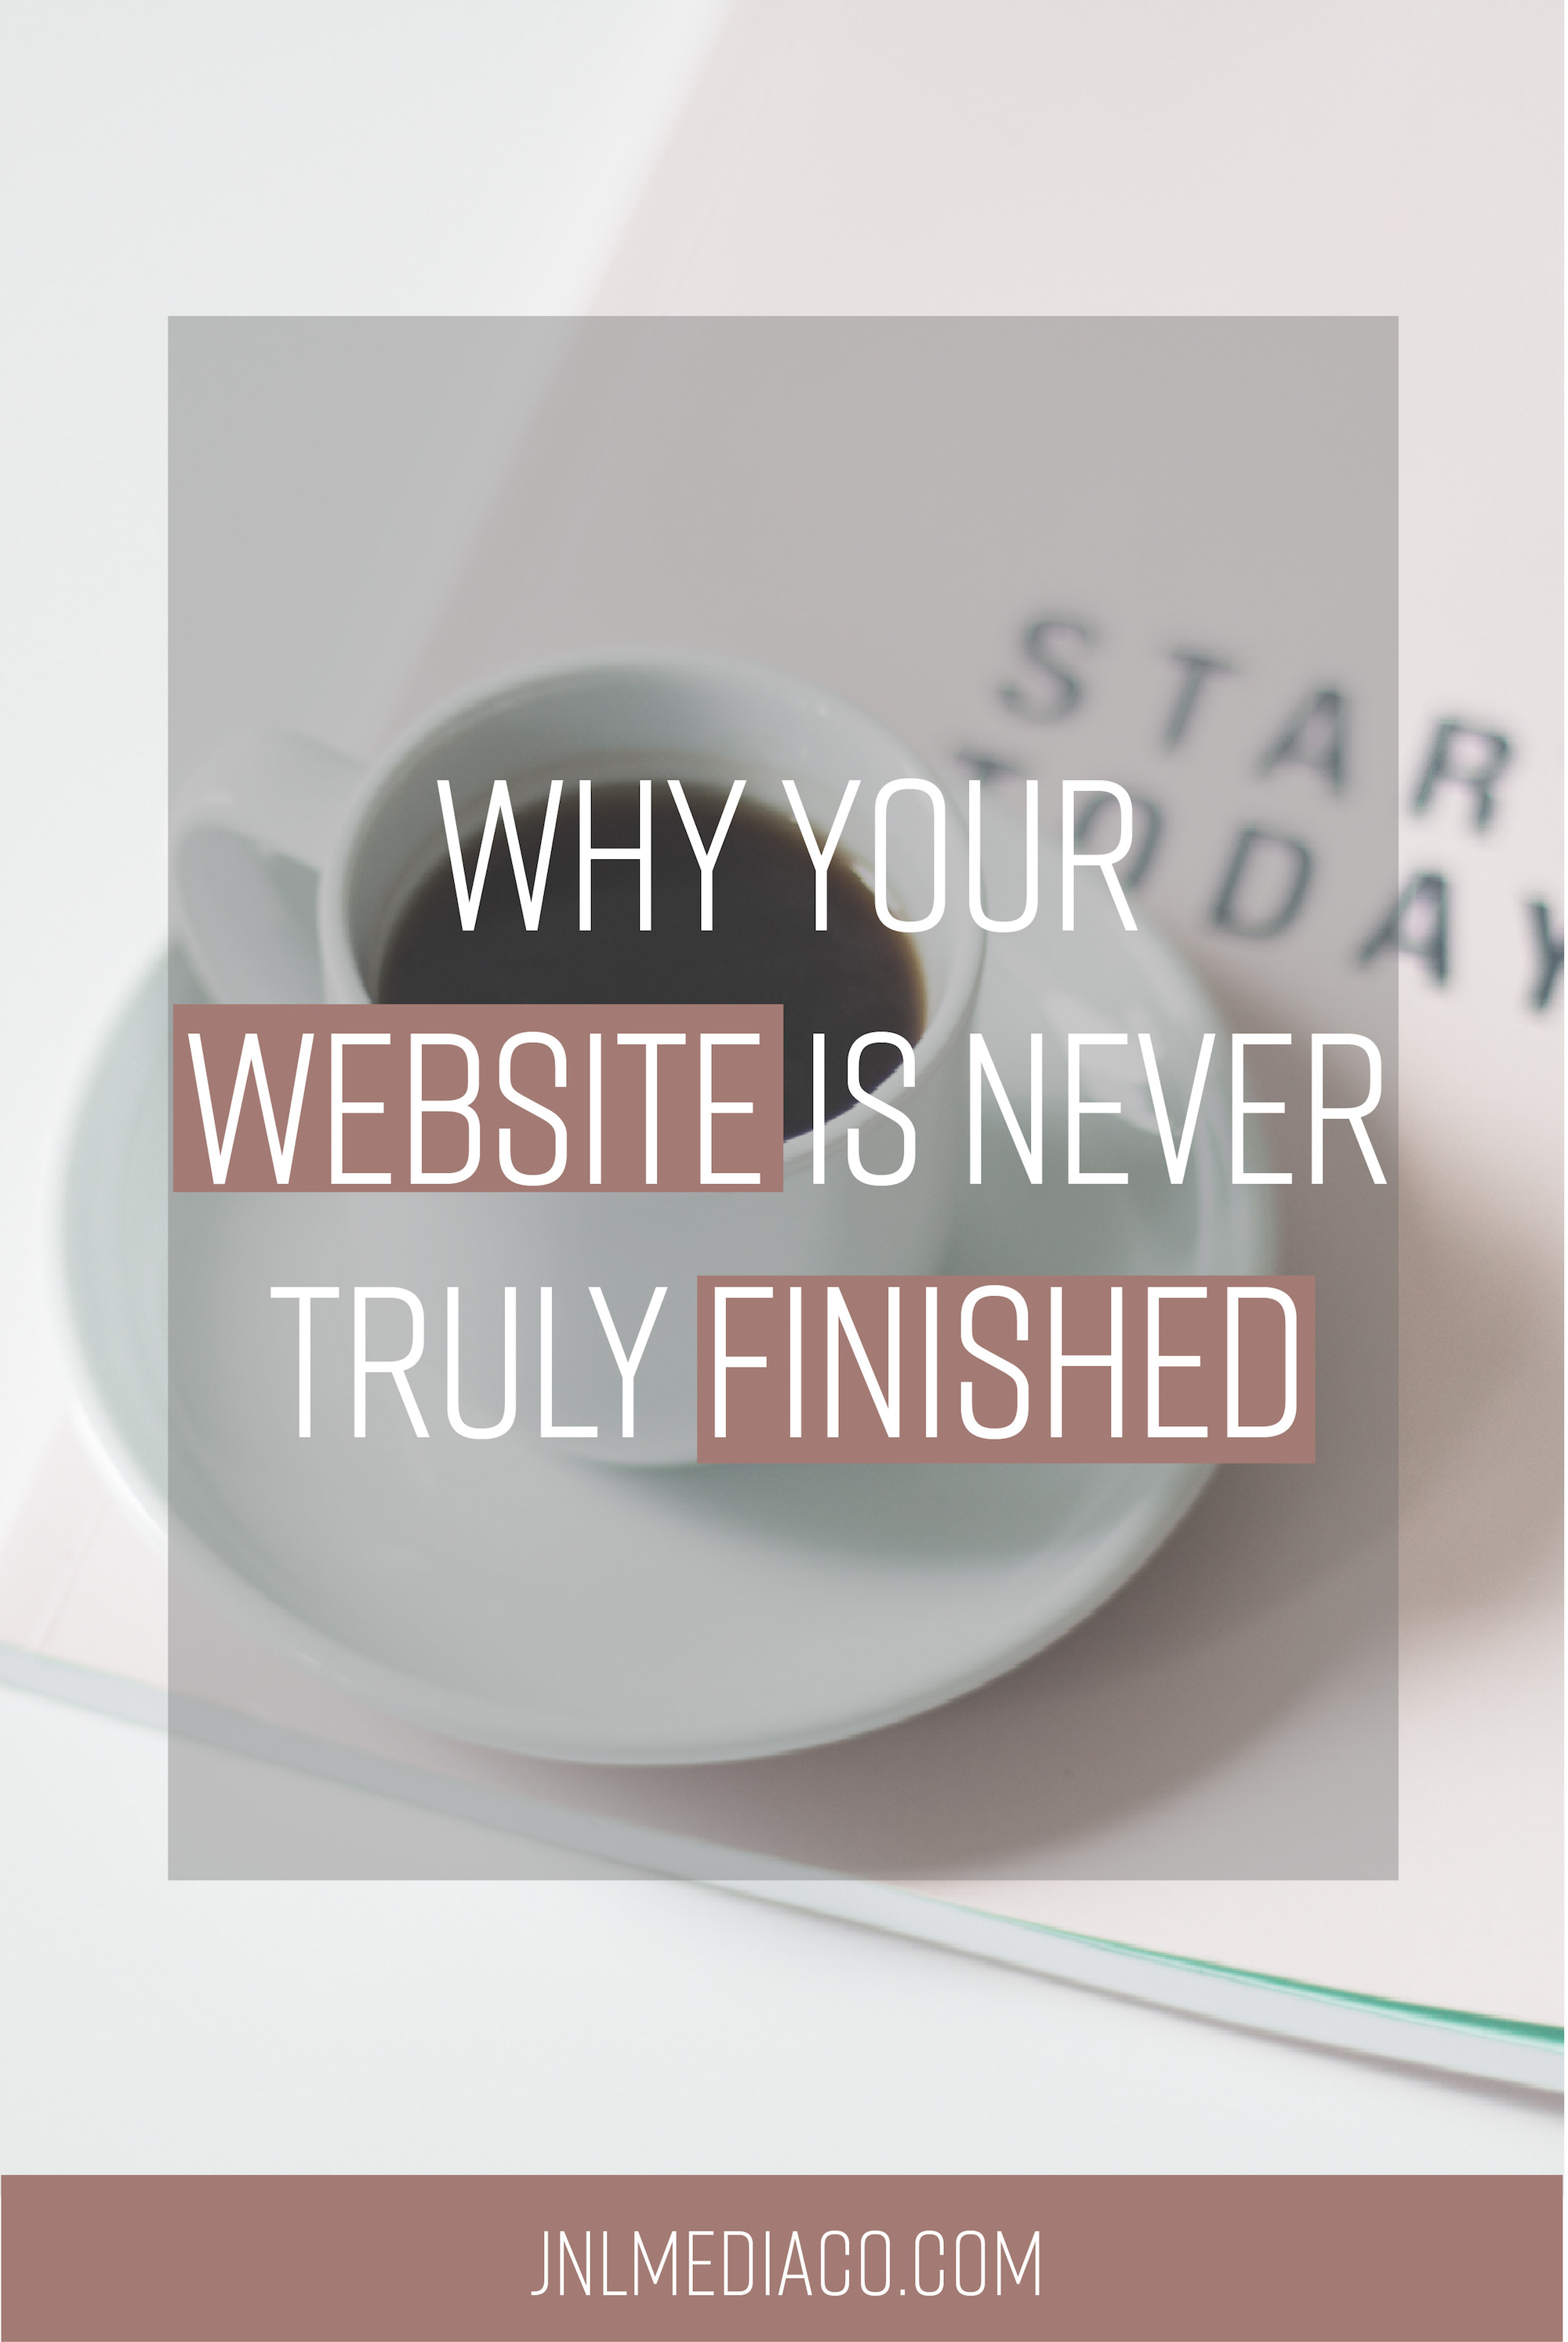 I have some good news for you! Your website is like a gift that keeps on giving because it's basically a 24/7 employee that you don't have to pay! Don't worry, it's not illegal or anything! Of course, you have to invest time and money at first but once you do it's pretty much up and running by itself except for one small detail…